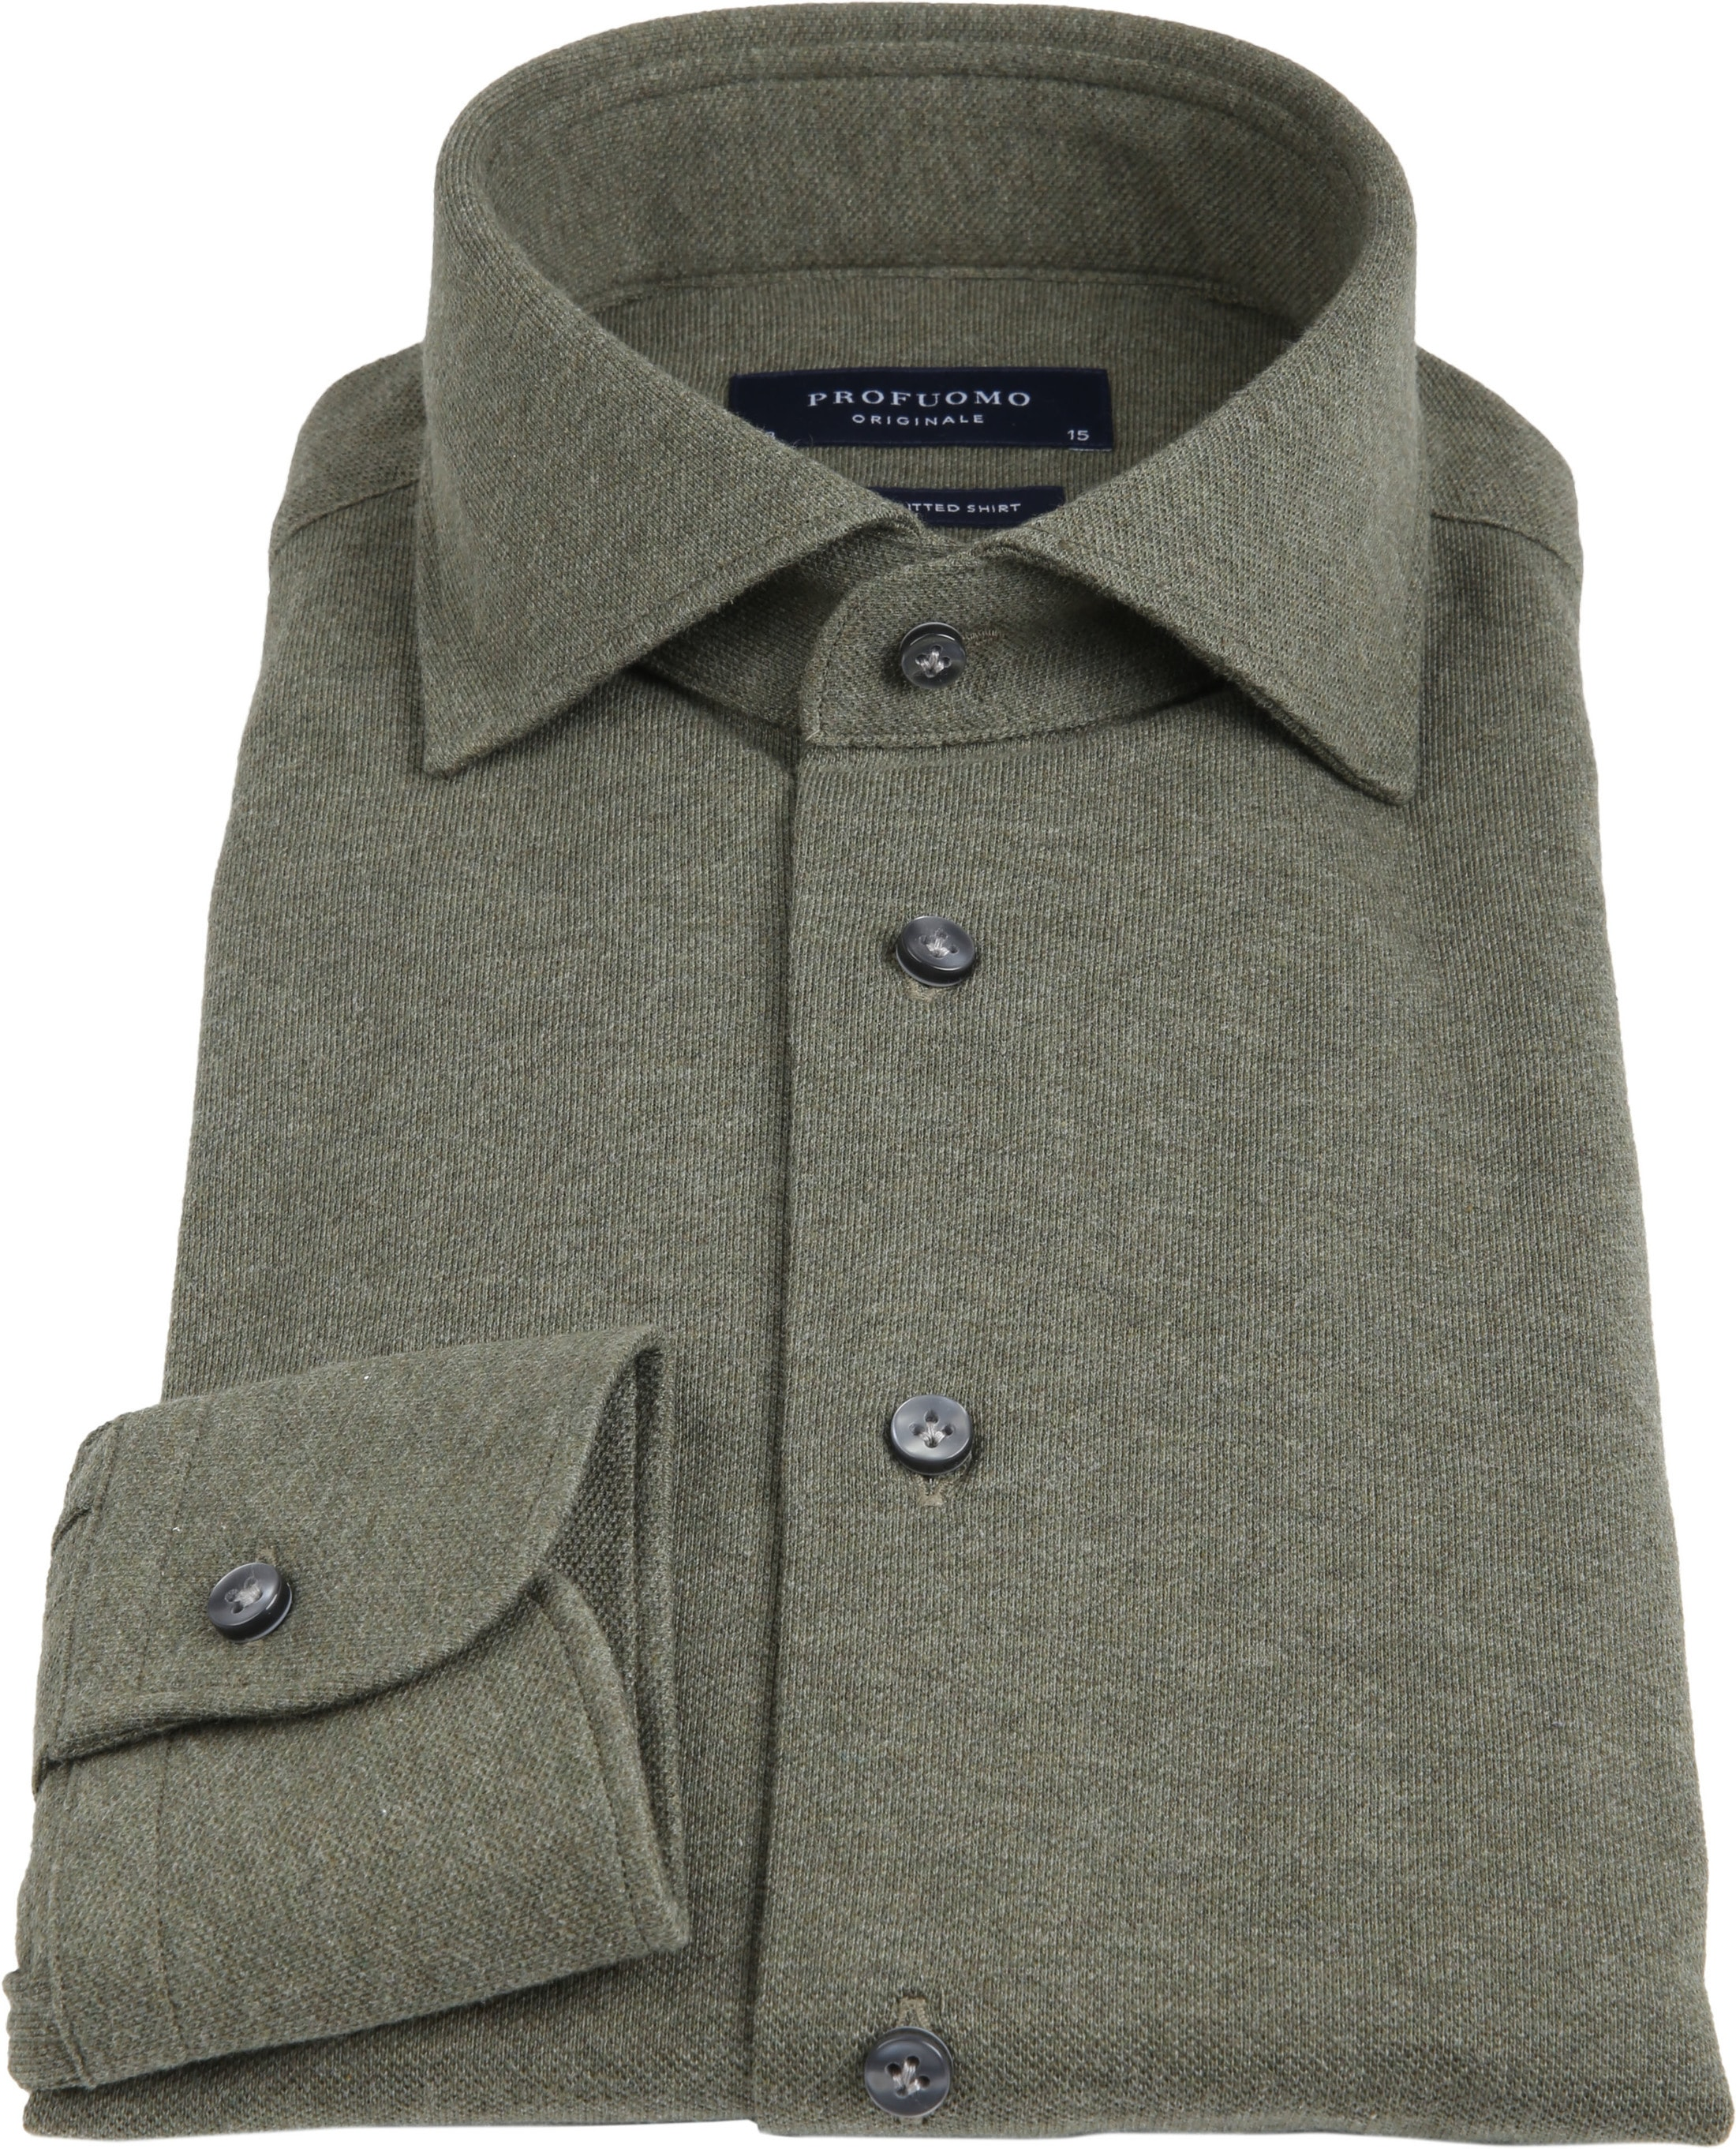 Profuomo Shirt Knitted Green foto 2